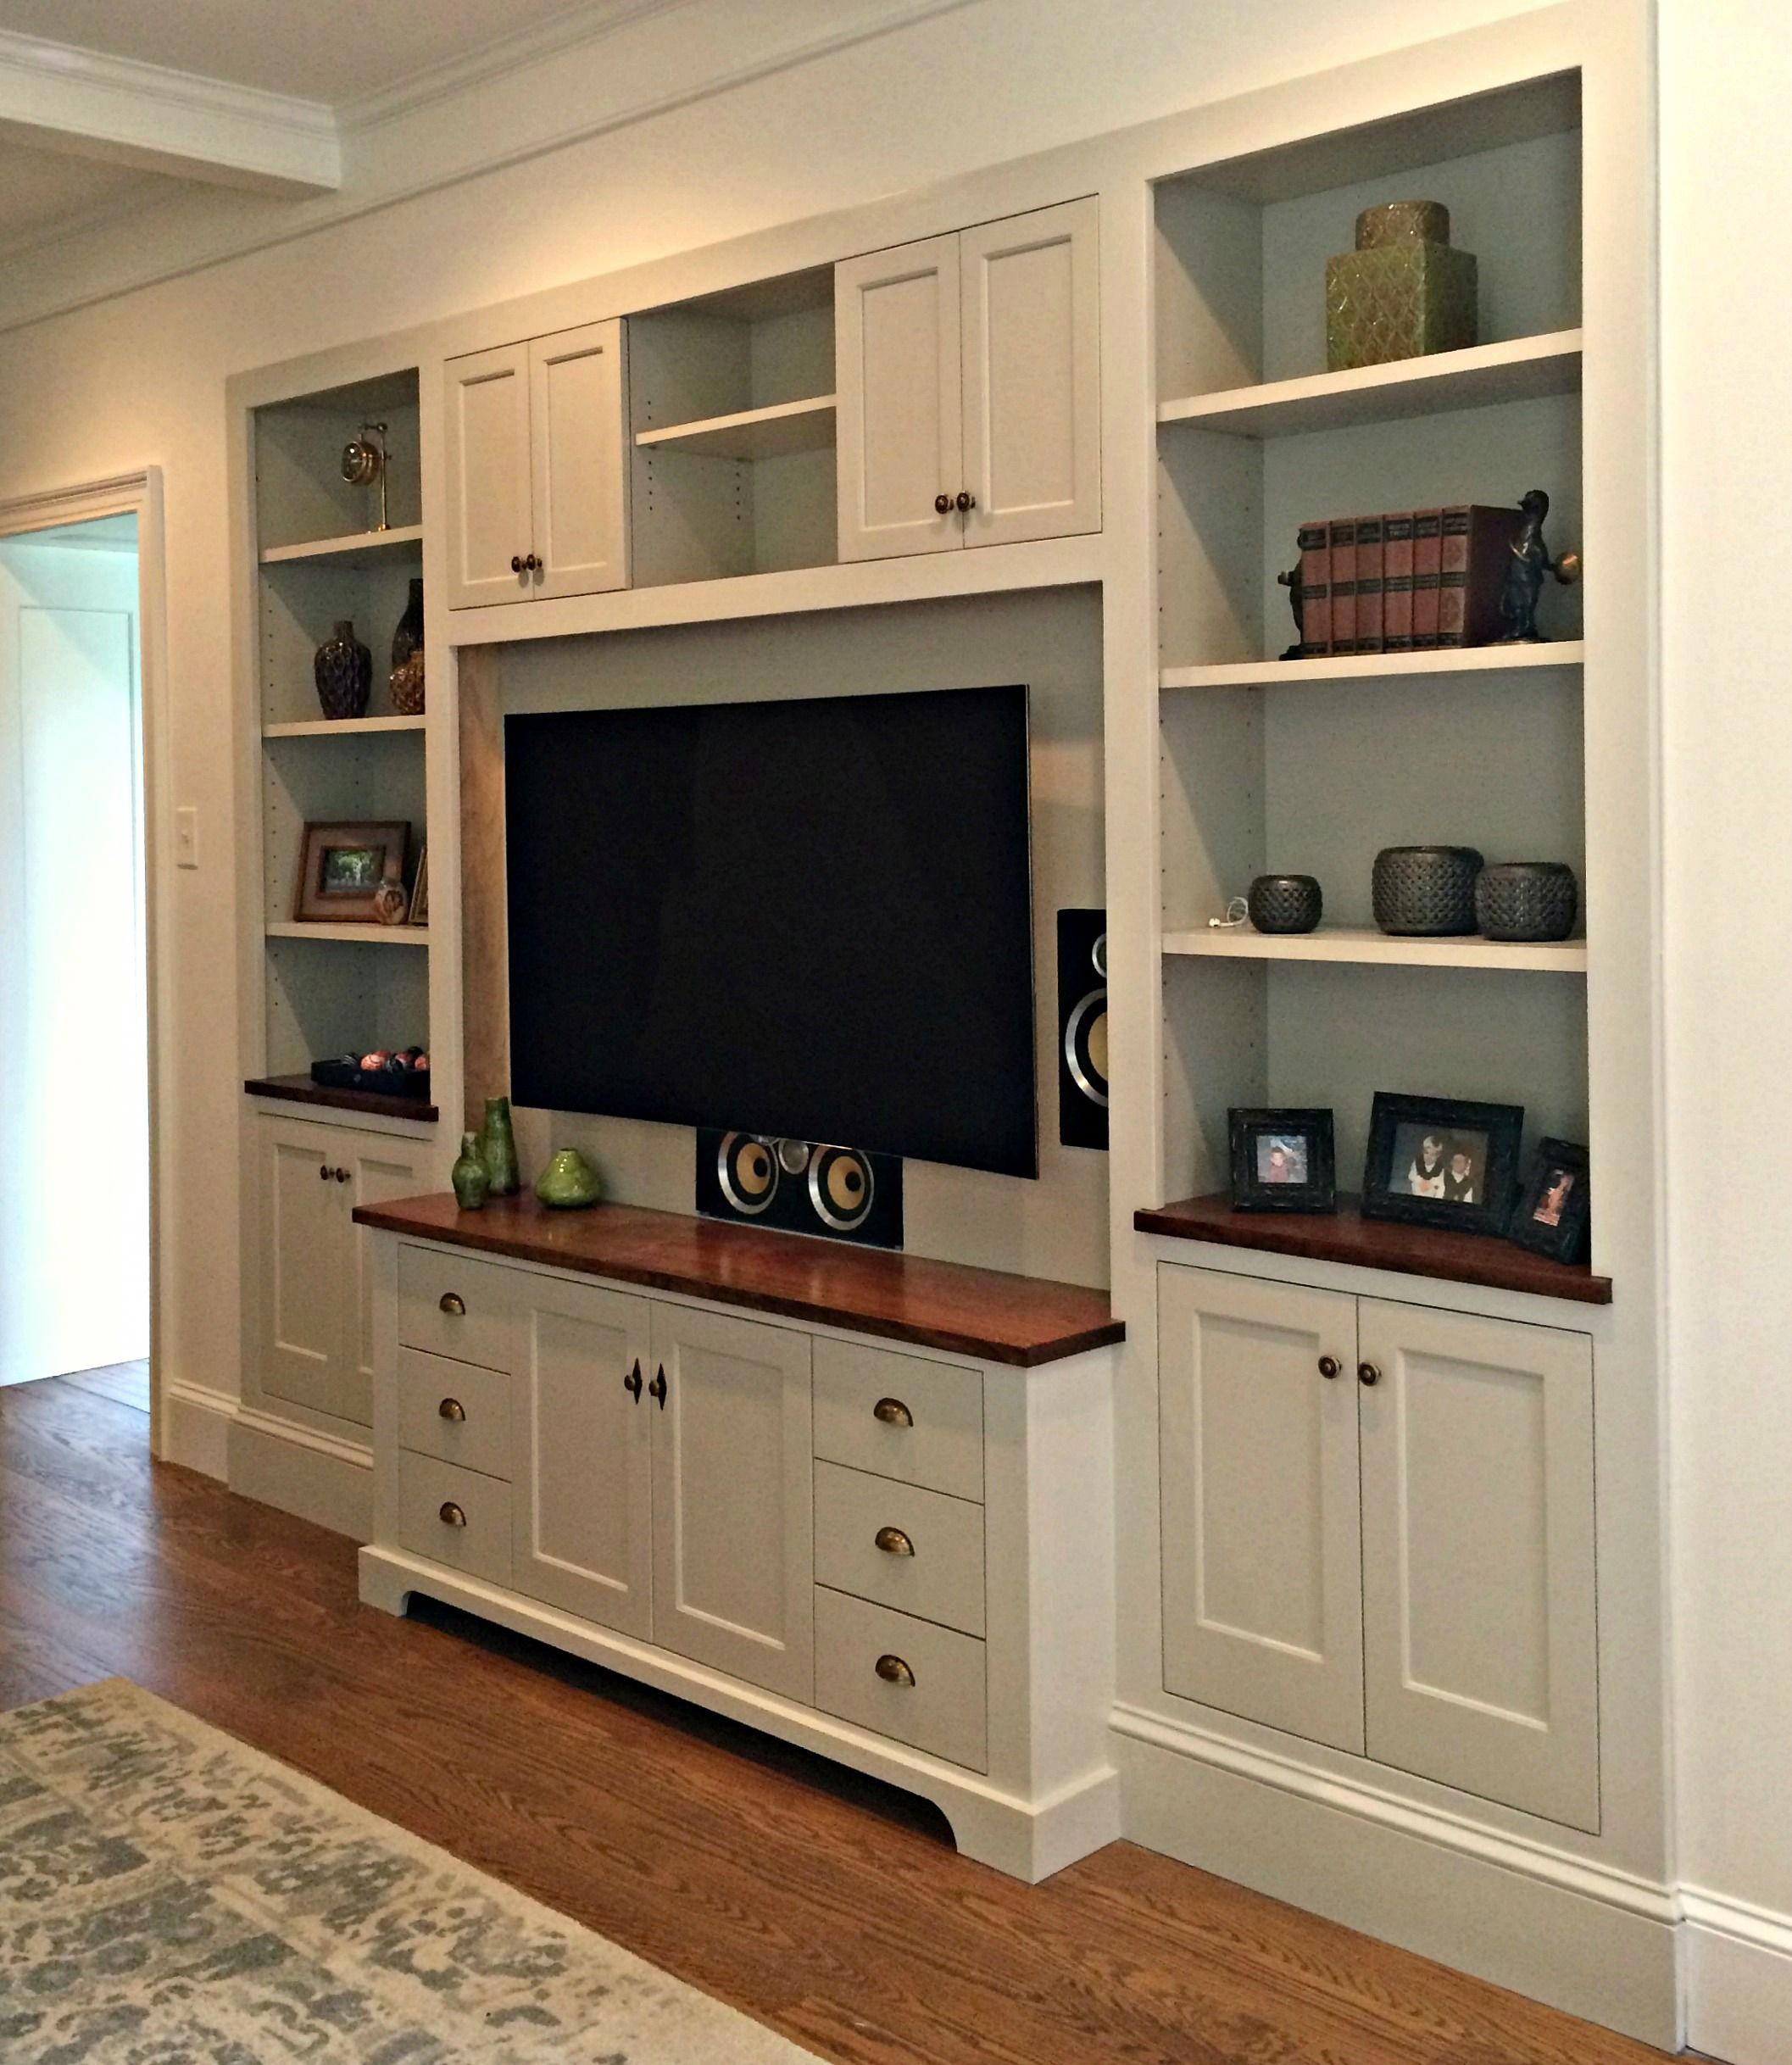 This Custom Entertainment Center Was Recessed Into The Wall Creating A Seamless Look Home Entertainment Centers Built In Entertainment Center Tv Cabinet Design